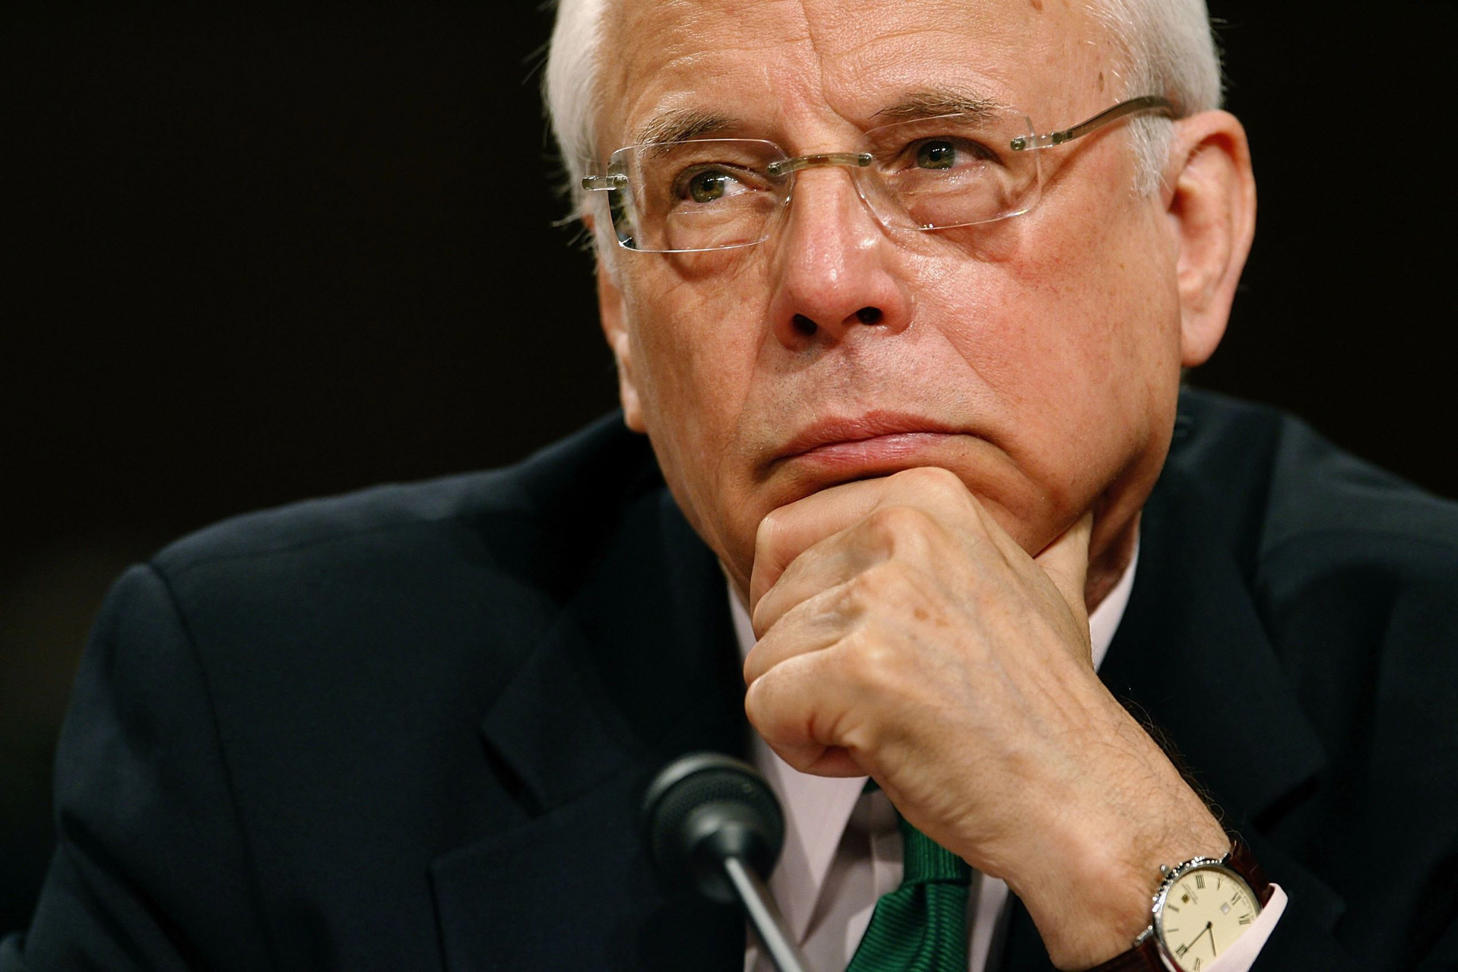 White House Counsel to President Richard Nixon, John Dean testifies before the Senate Judiciary Committee at the invitation of Sen. Russell Feingold (D-WI) on Capitol Hill March 31, 2006 in Washington, DC.